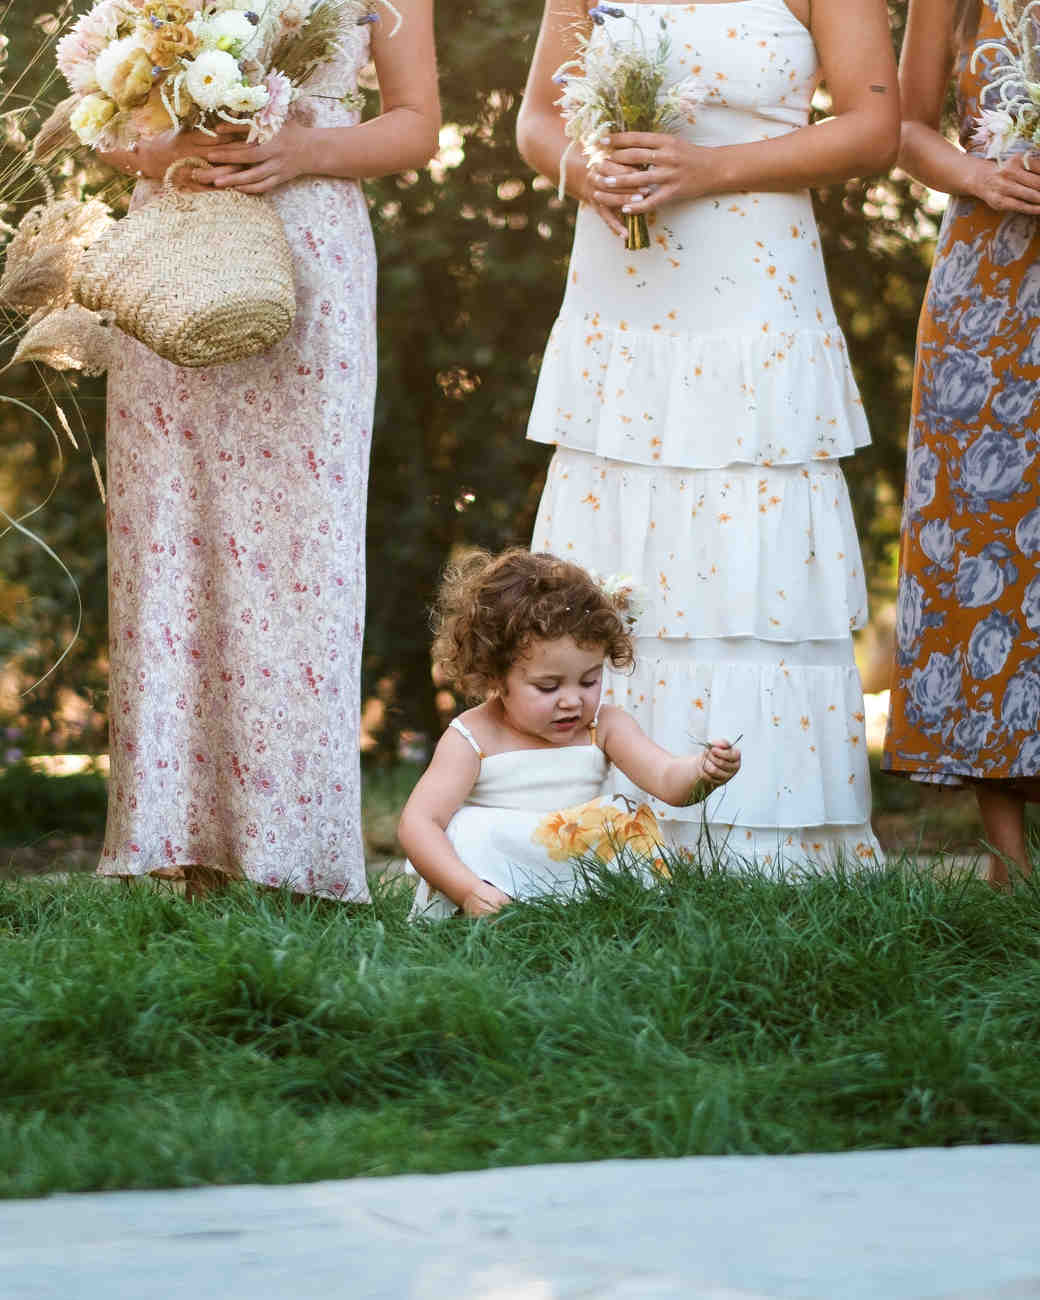 anika max wedding flower girl in grass with bridesmaids